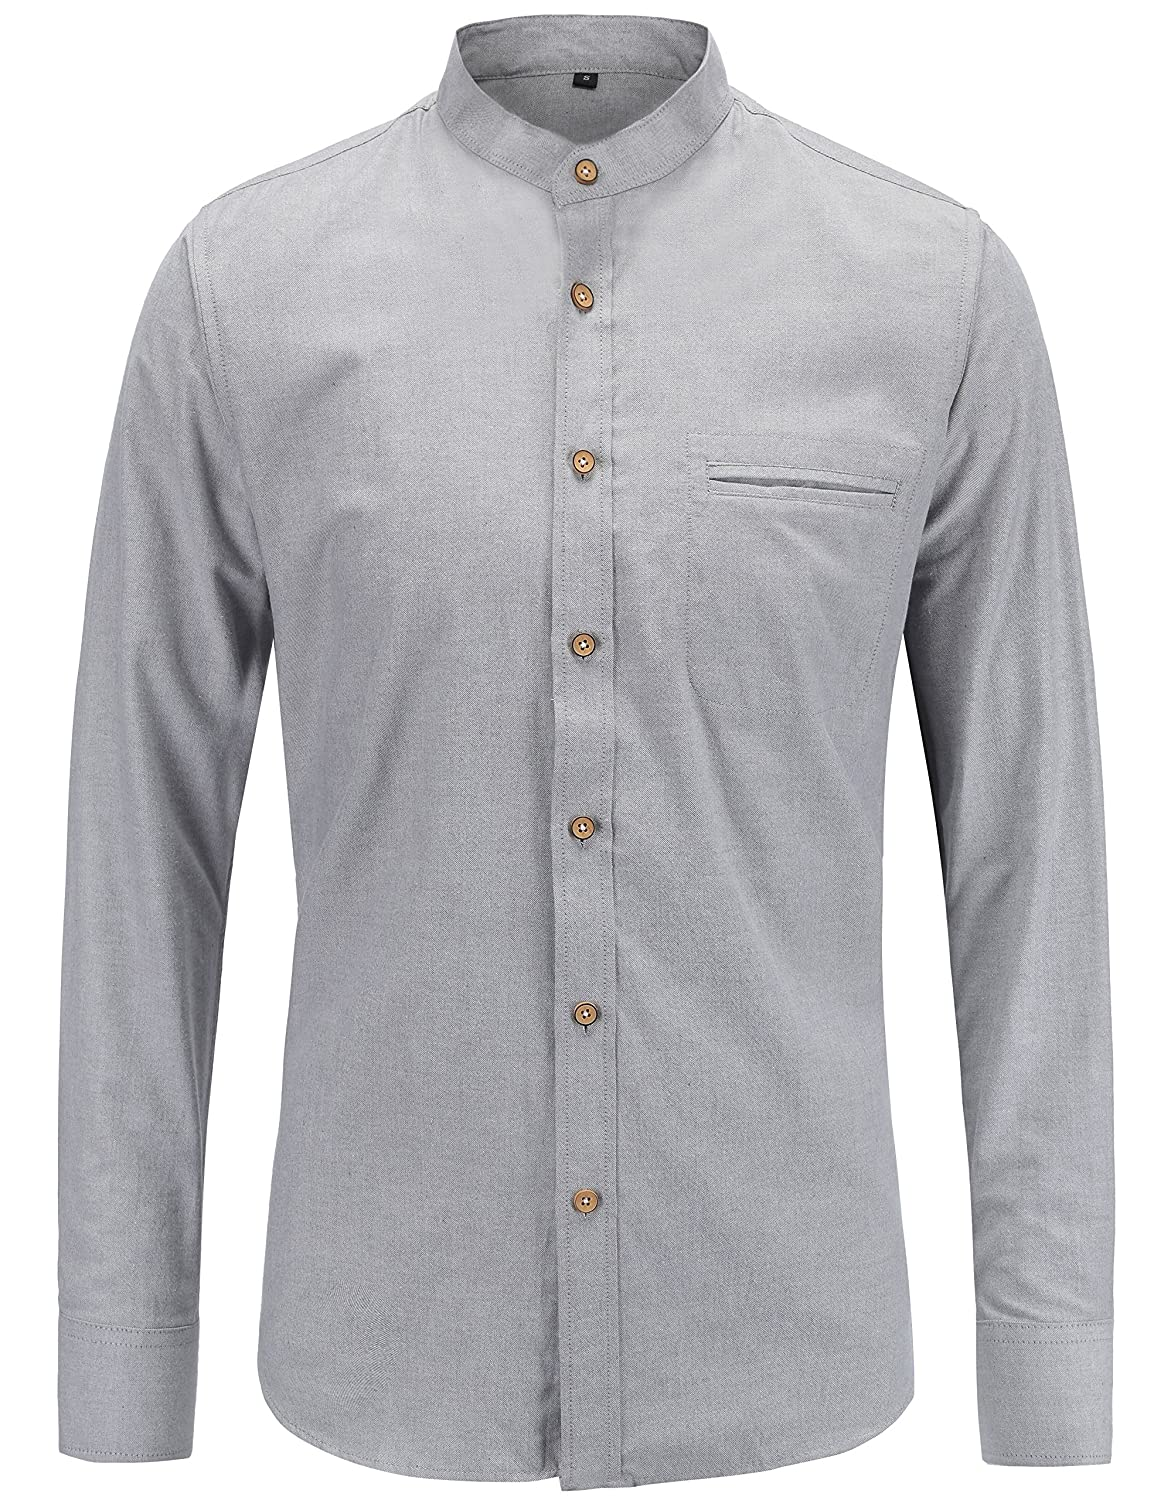 TALLA M. JEETOO Camisas Hombre Casual de Manga Larga Color Sólido Oxford